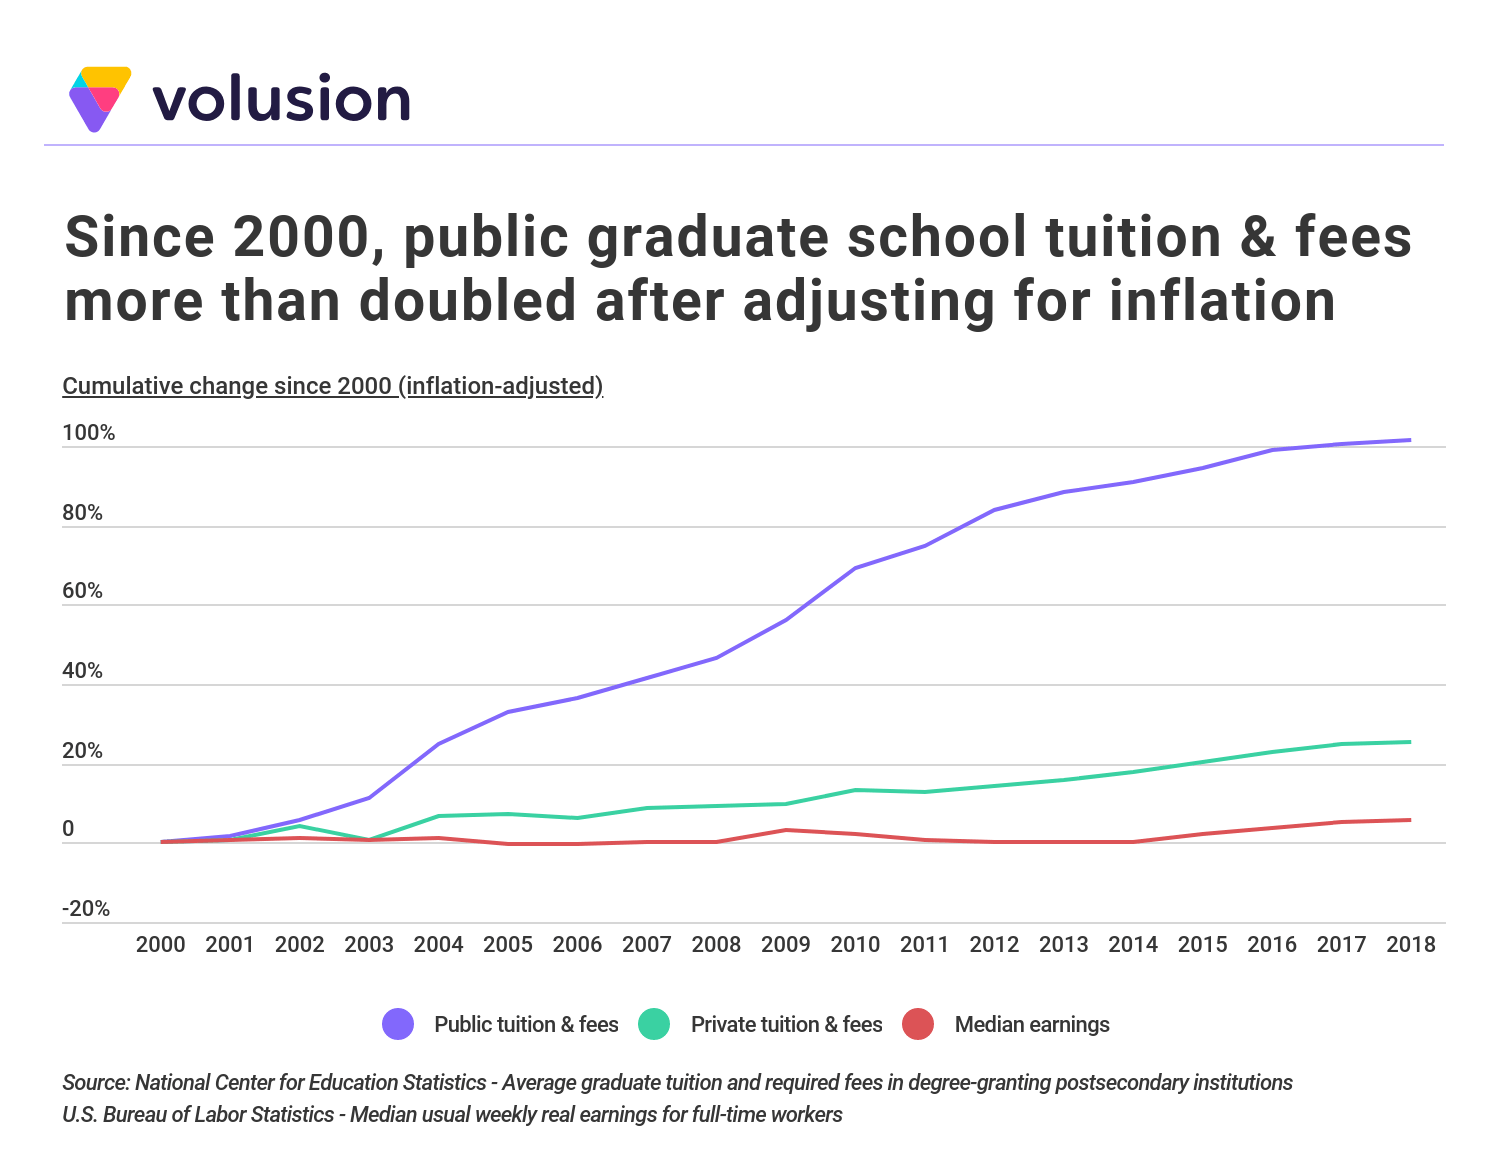 Chart showing that since 2000, public graduate school tuition and fees more than doubled after adjusting for inflation.